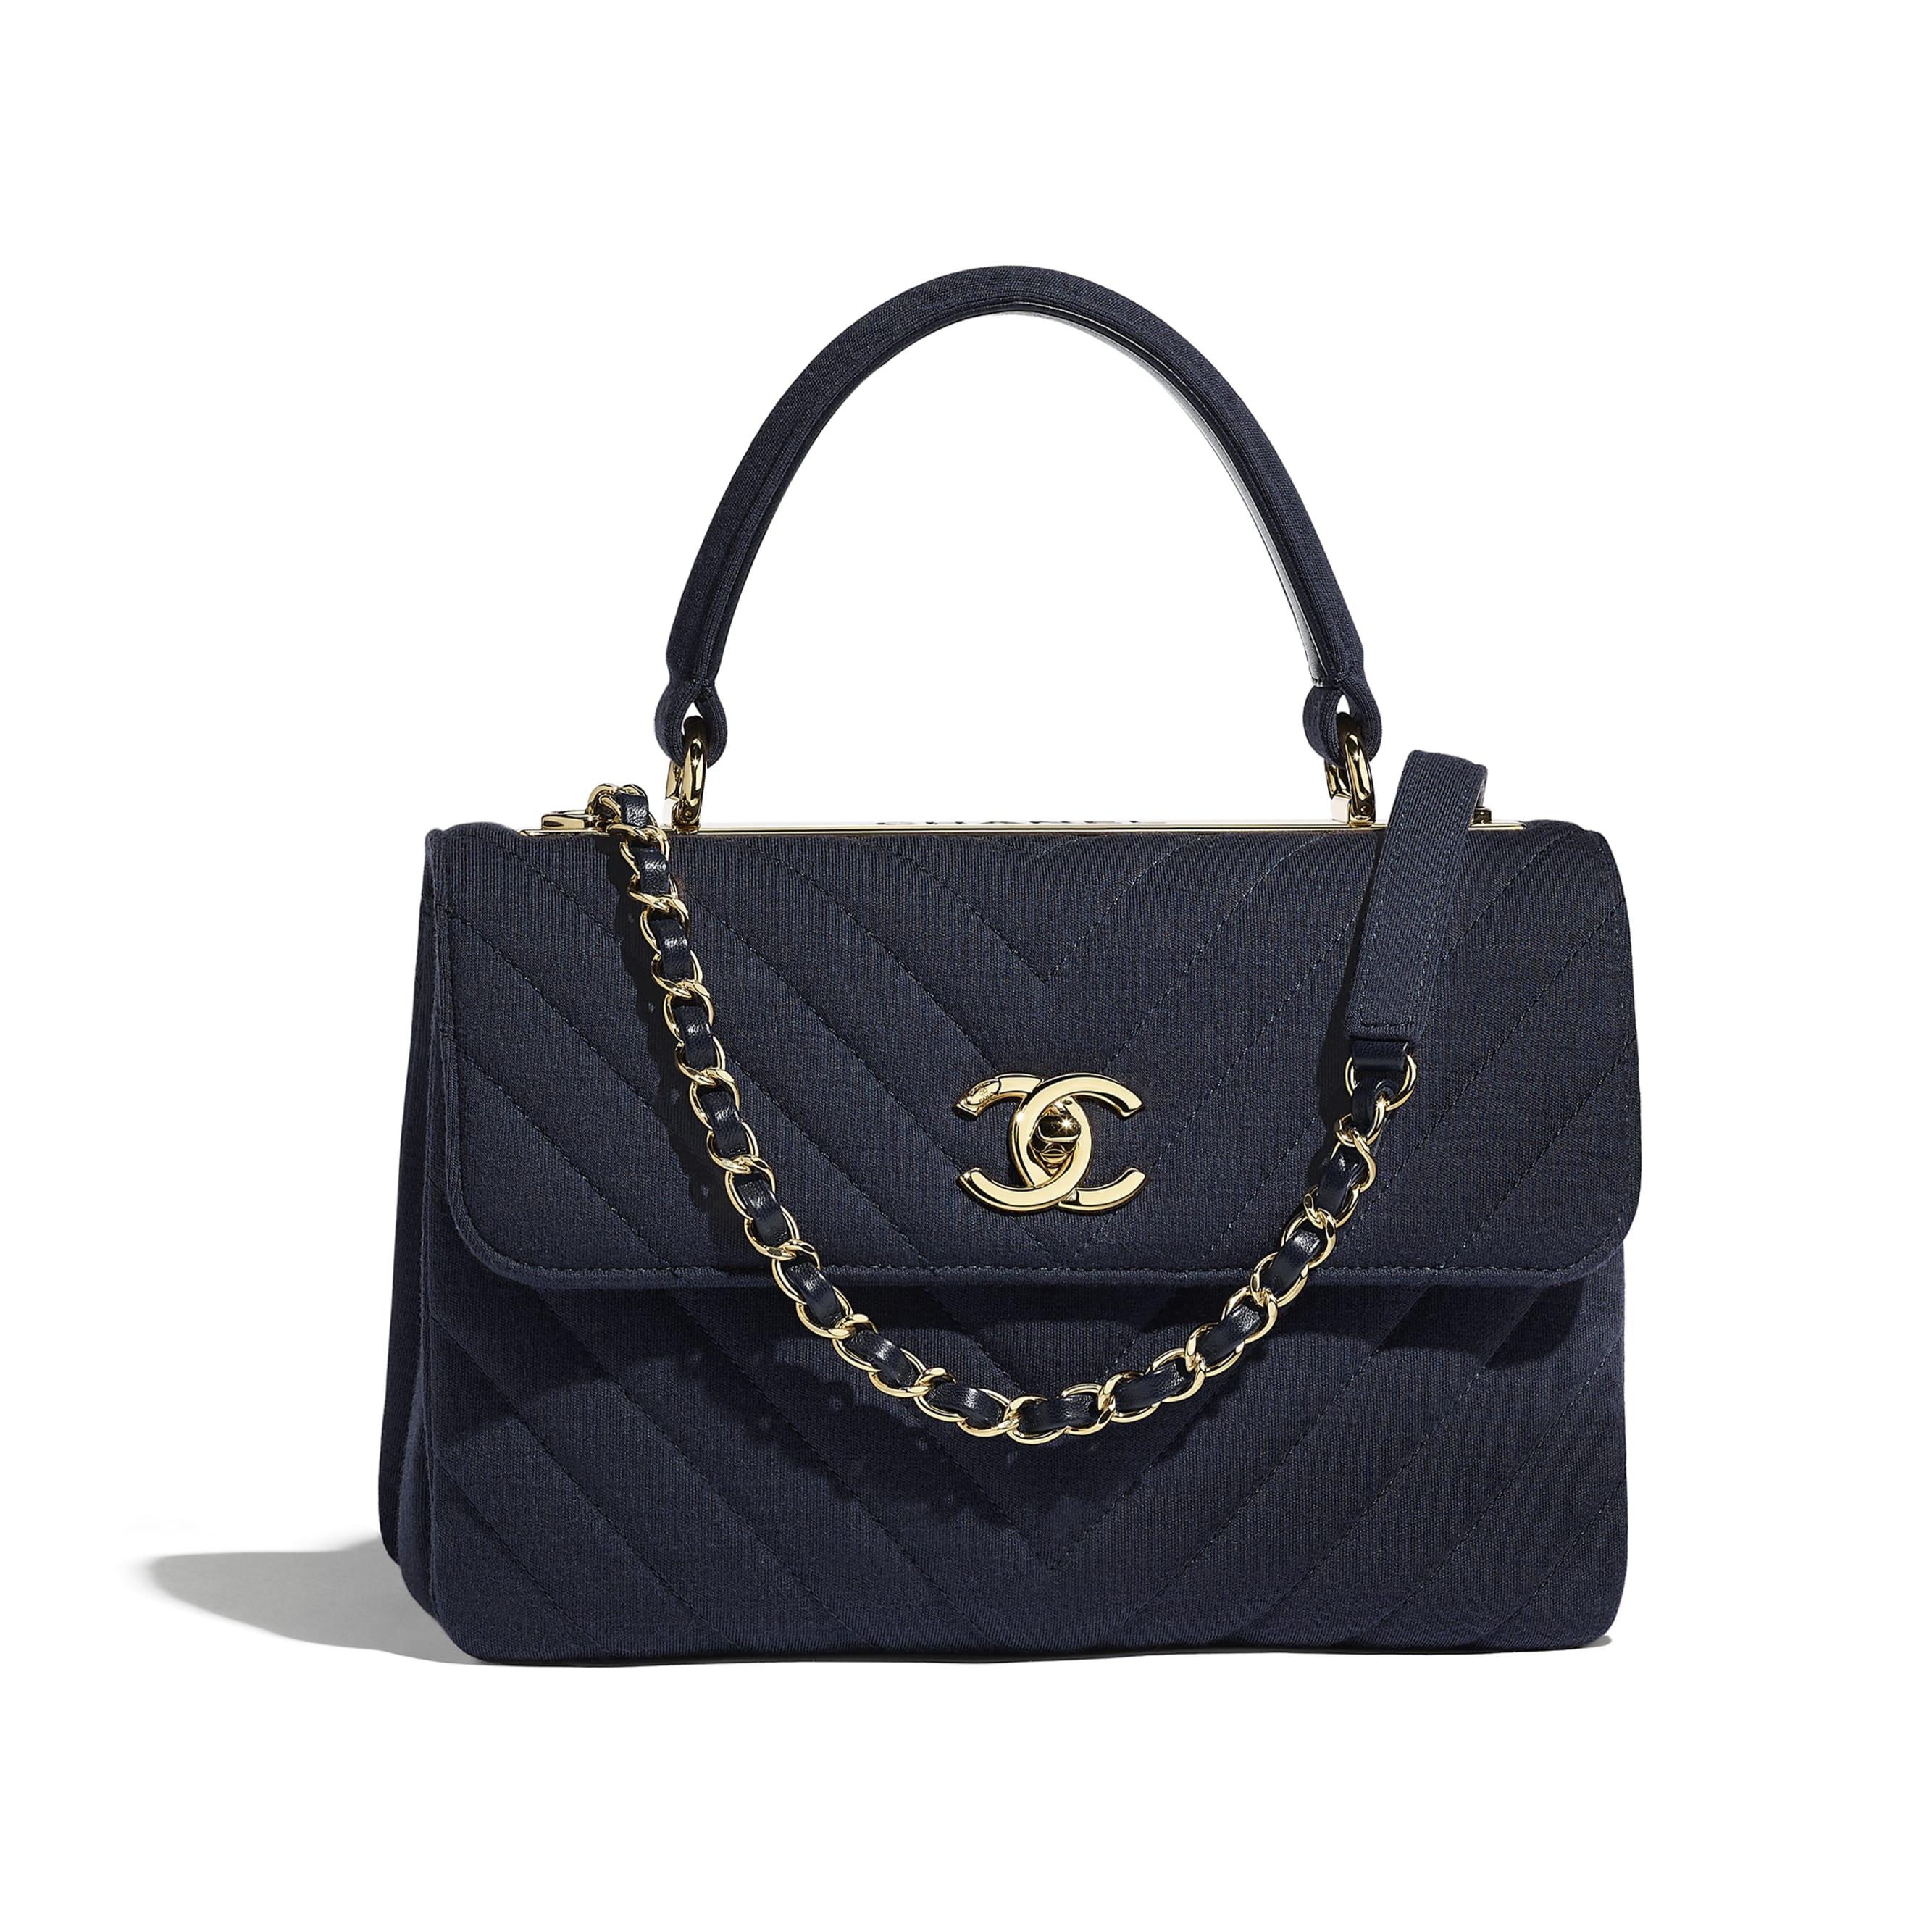 Small Flap Bag with Top Handle - Navy Blue - Jersey & Gold-Tone Metal - Default view - see standard sized version